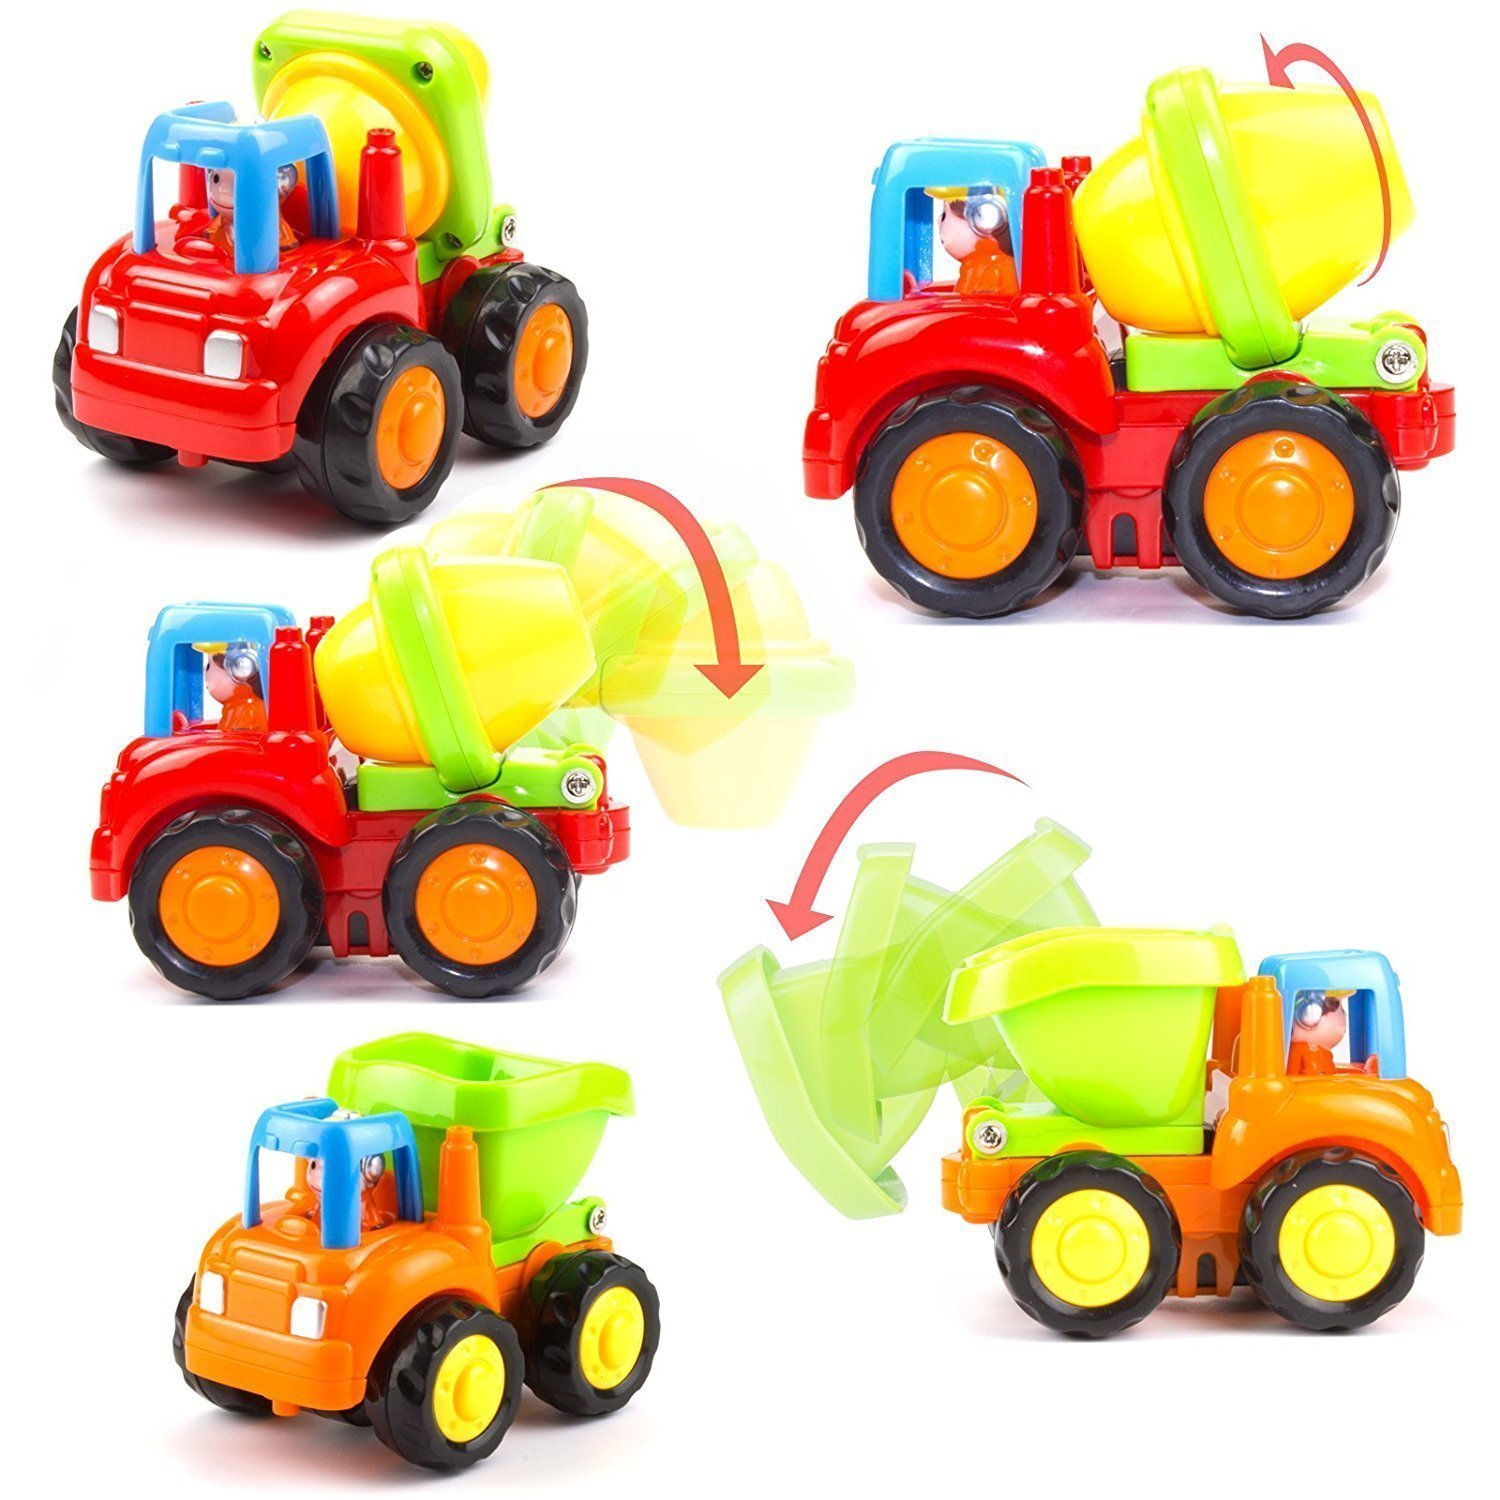 Wolson Push and Go Friction Powered Car Toys Engineering Vehicles Set Tractor Bulldozer Mixer Truck and Dumper for Baby Toddlers by Wolson (Image #5)